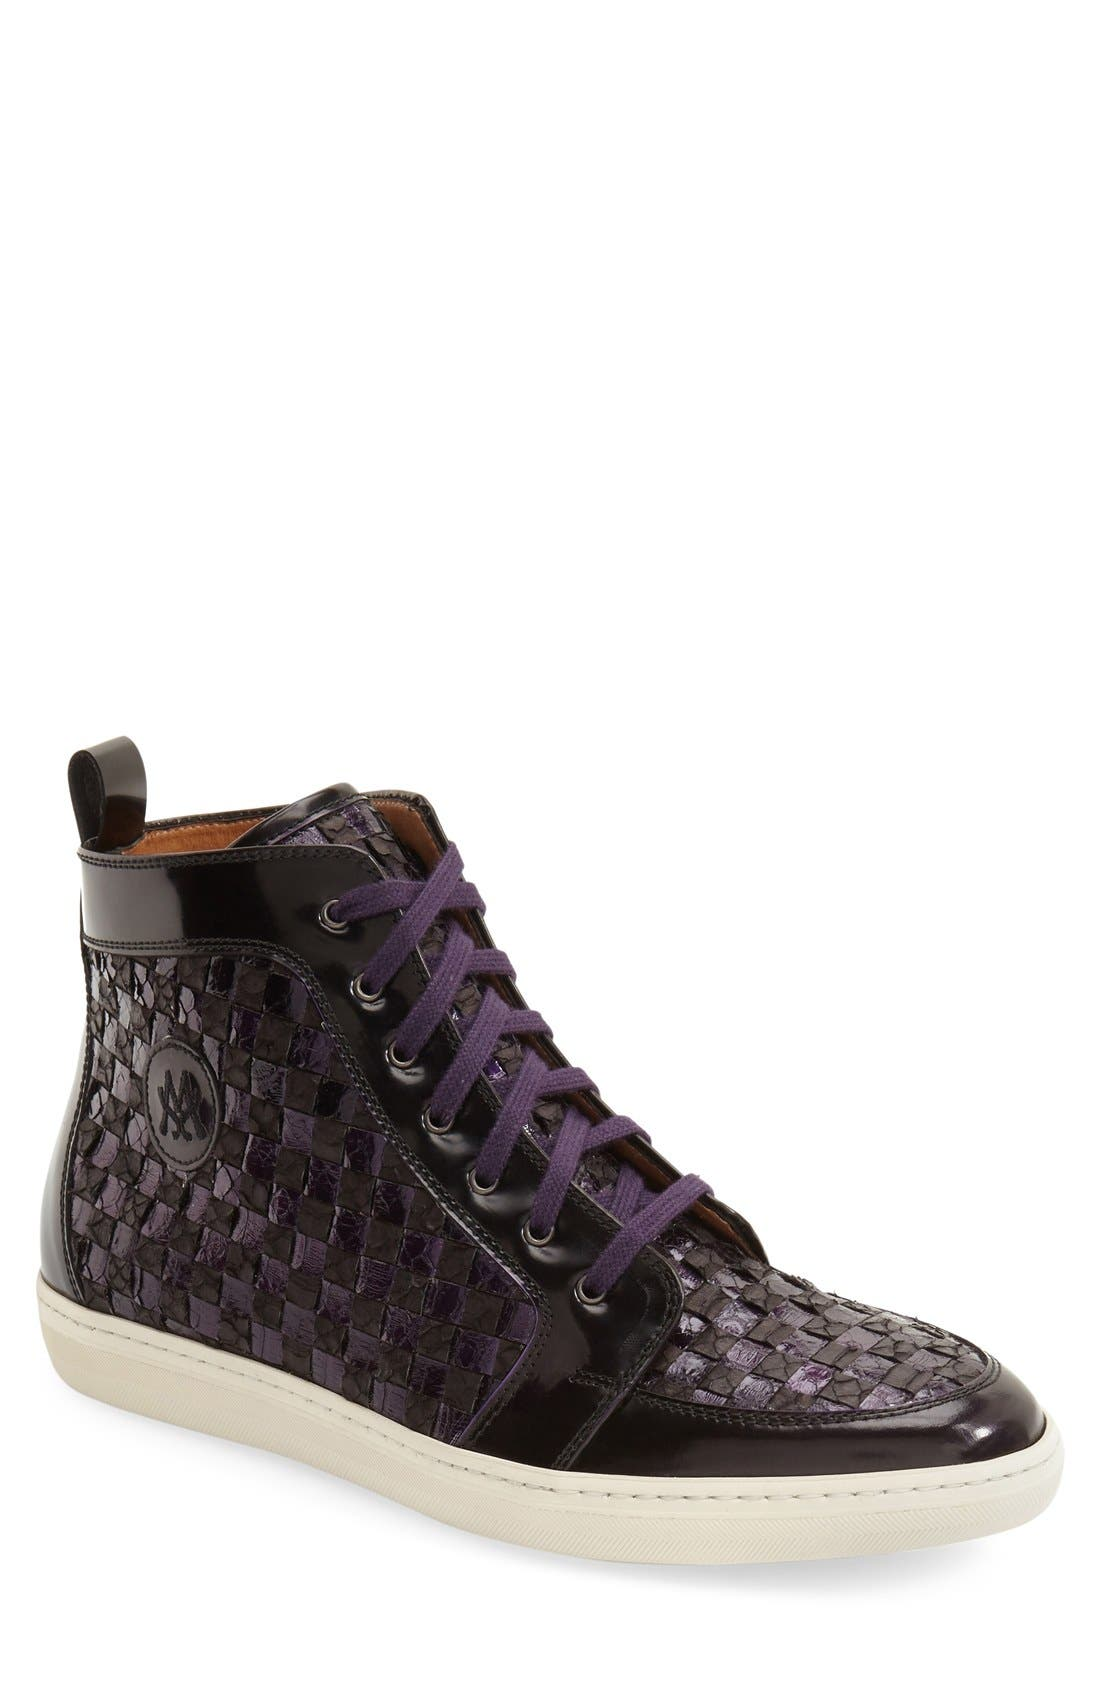 MEZLAN 'Colonia' High Top Sneaker